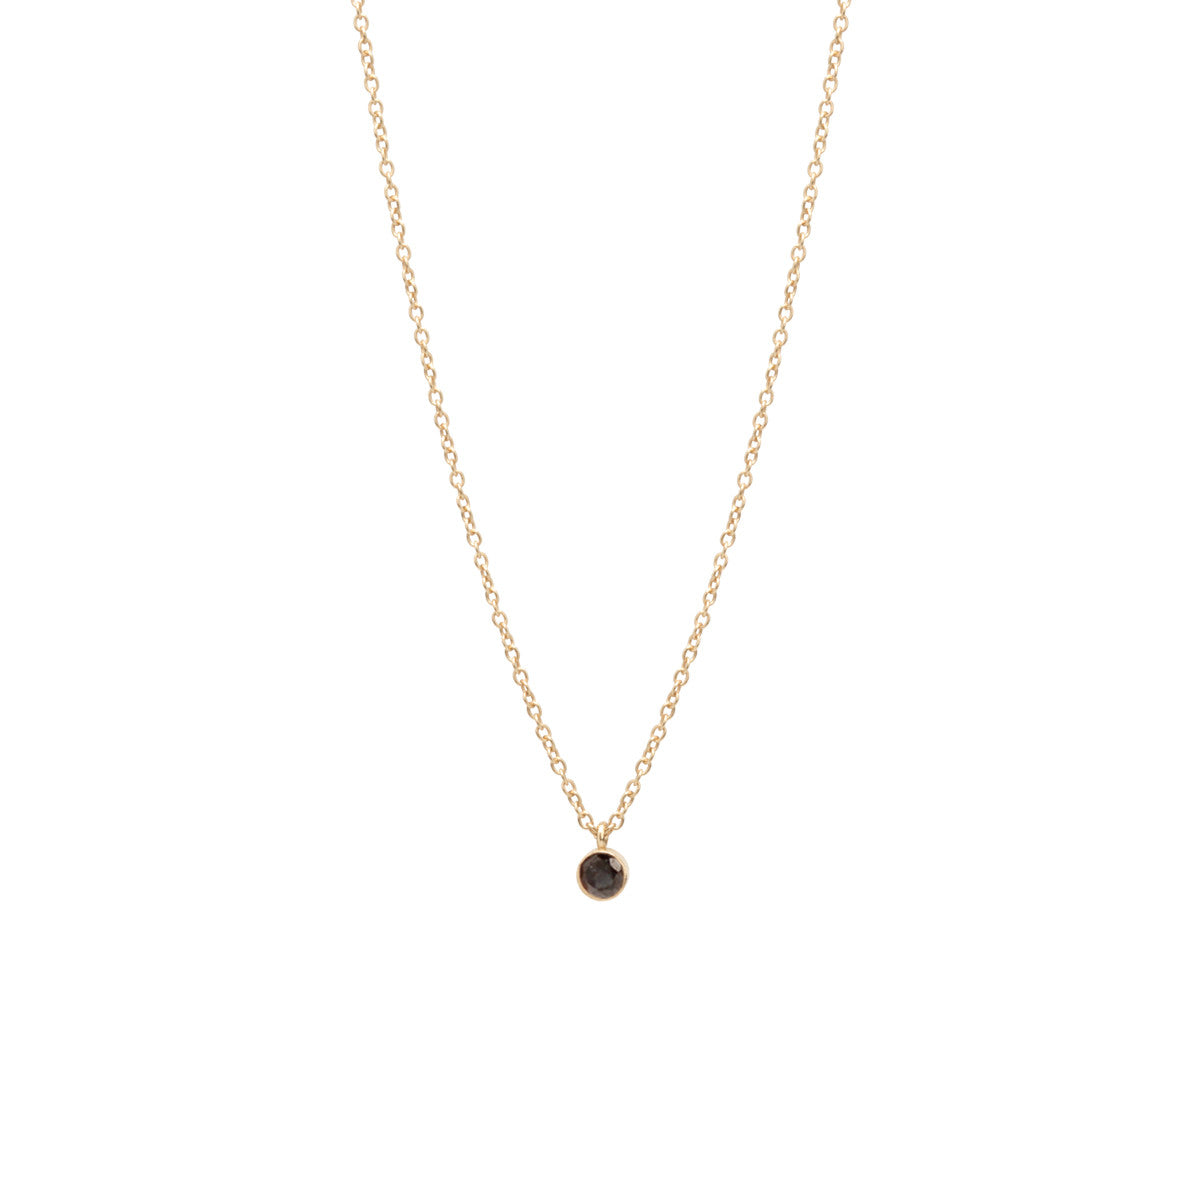 14k single large black diamond choker pendant necklace